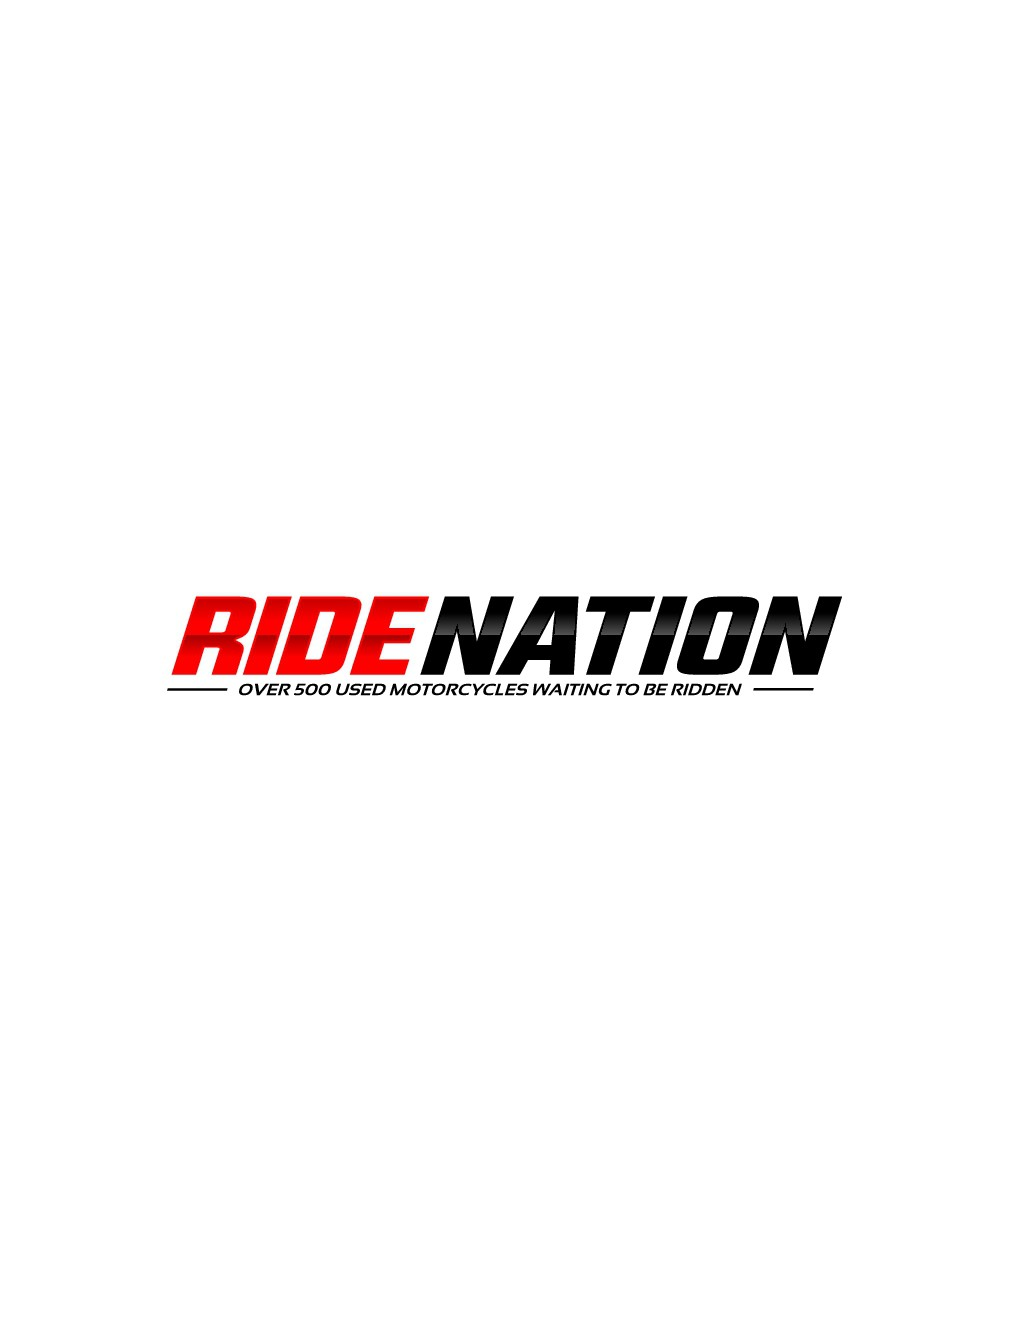 New Online Motorcycle store (warehouse based) requires cool logo